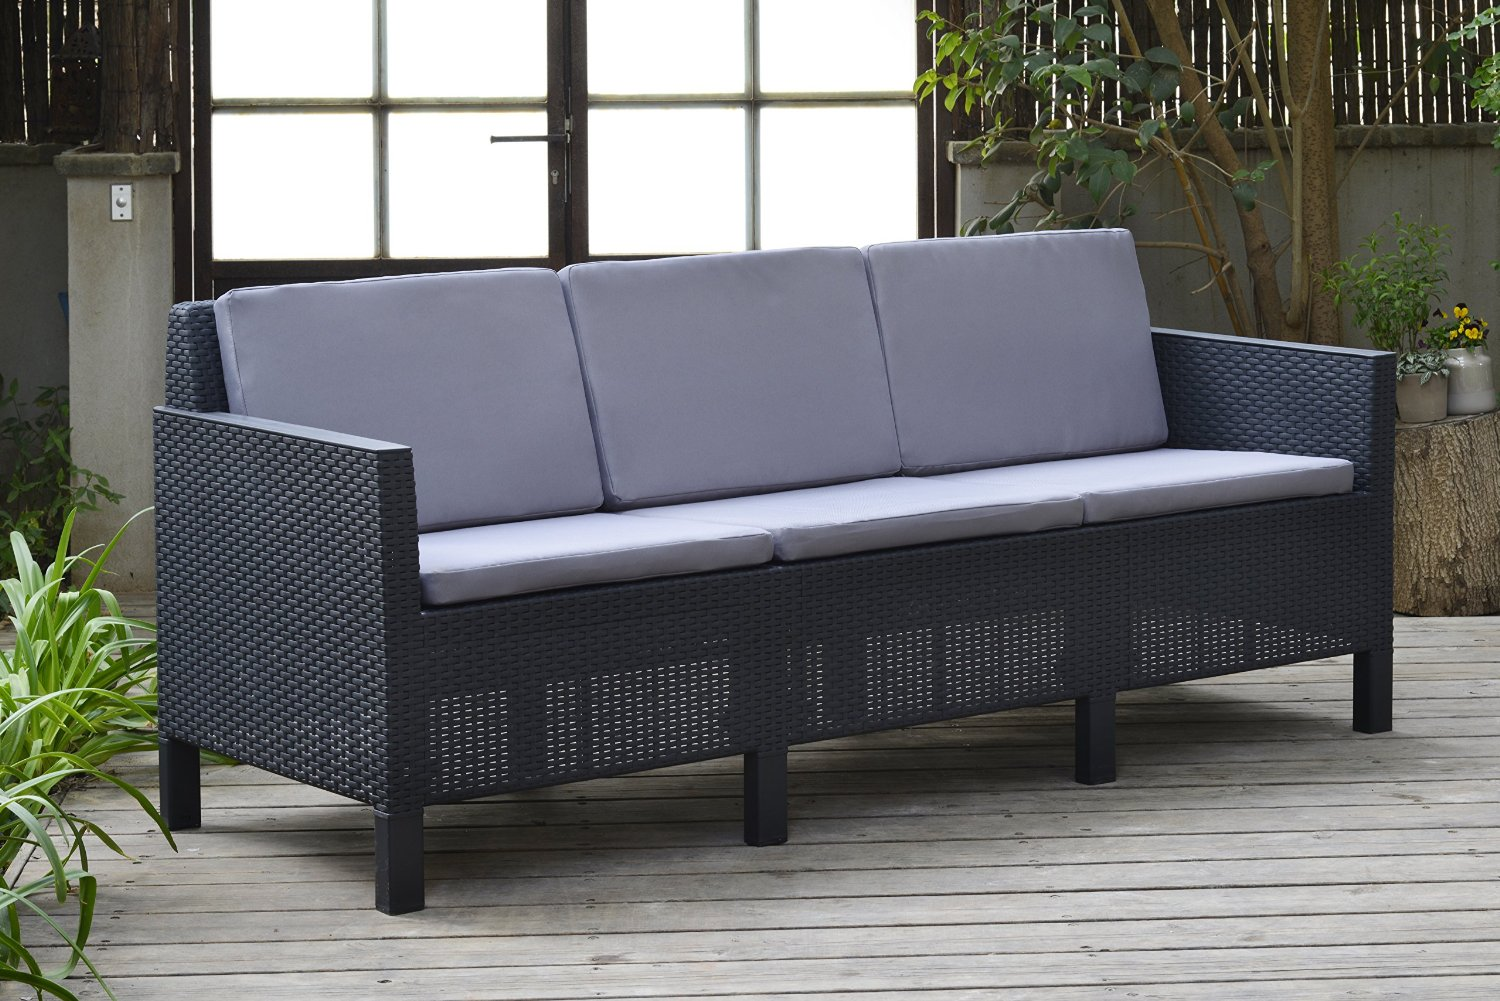 Lounge Sofa Allibert Allibert Chicago 5 Seater Lounge Set With Grey Cushions